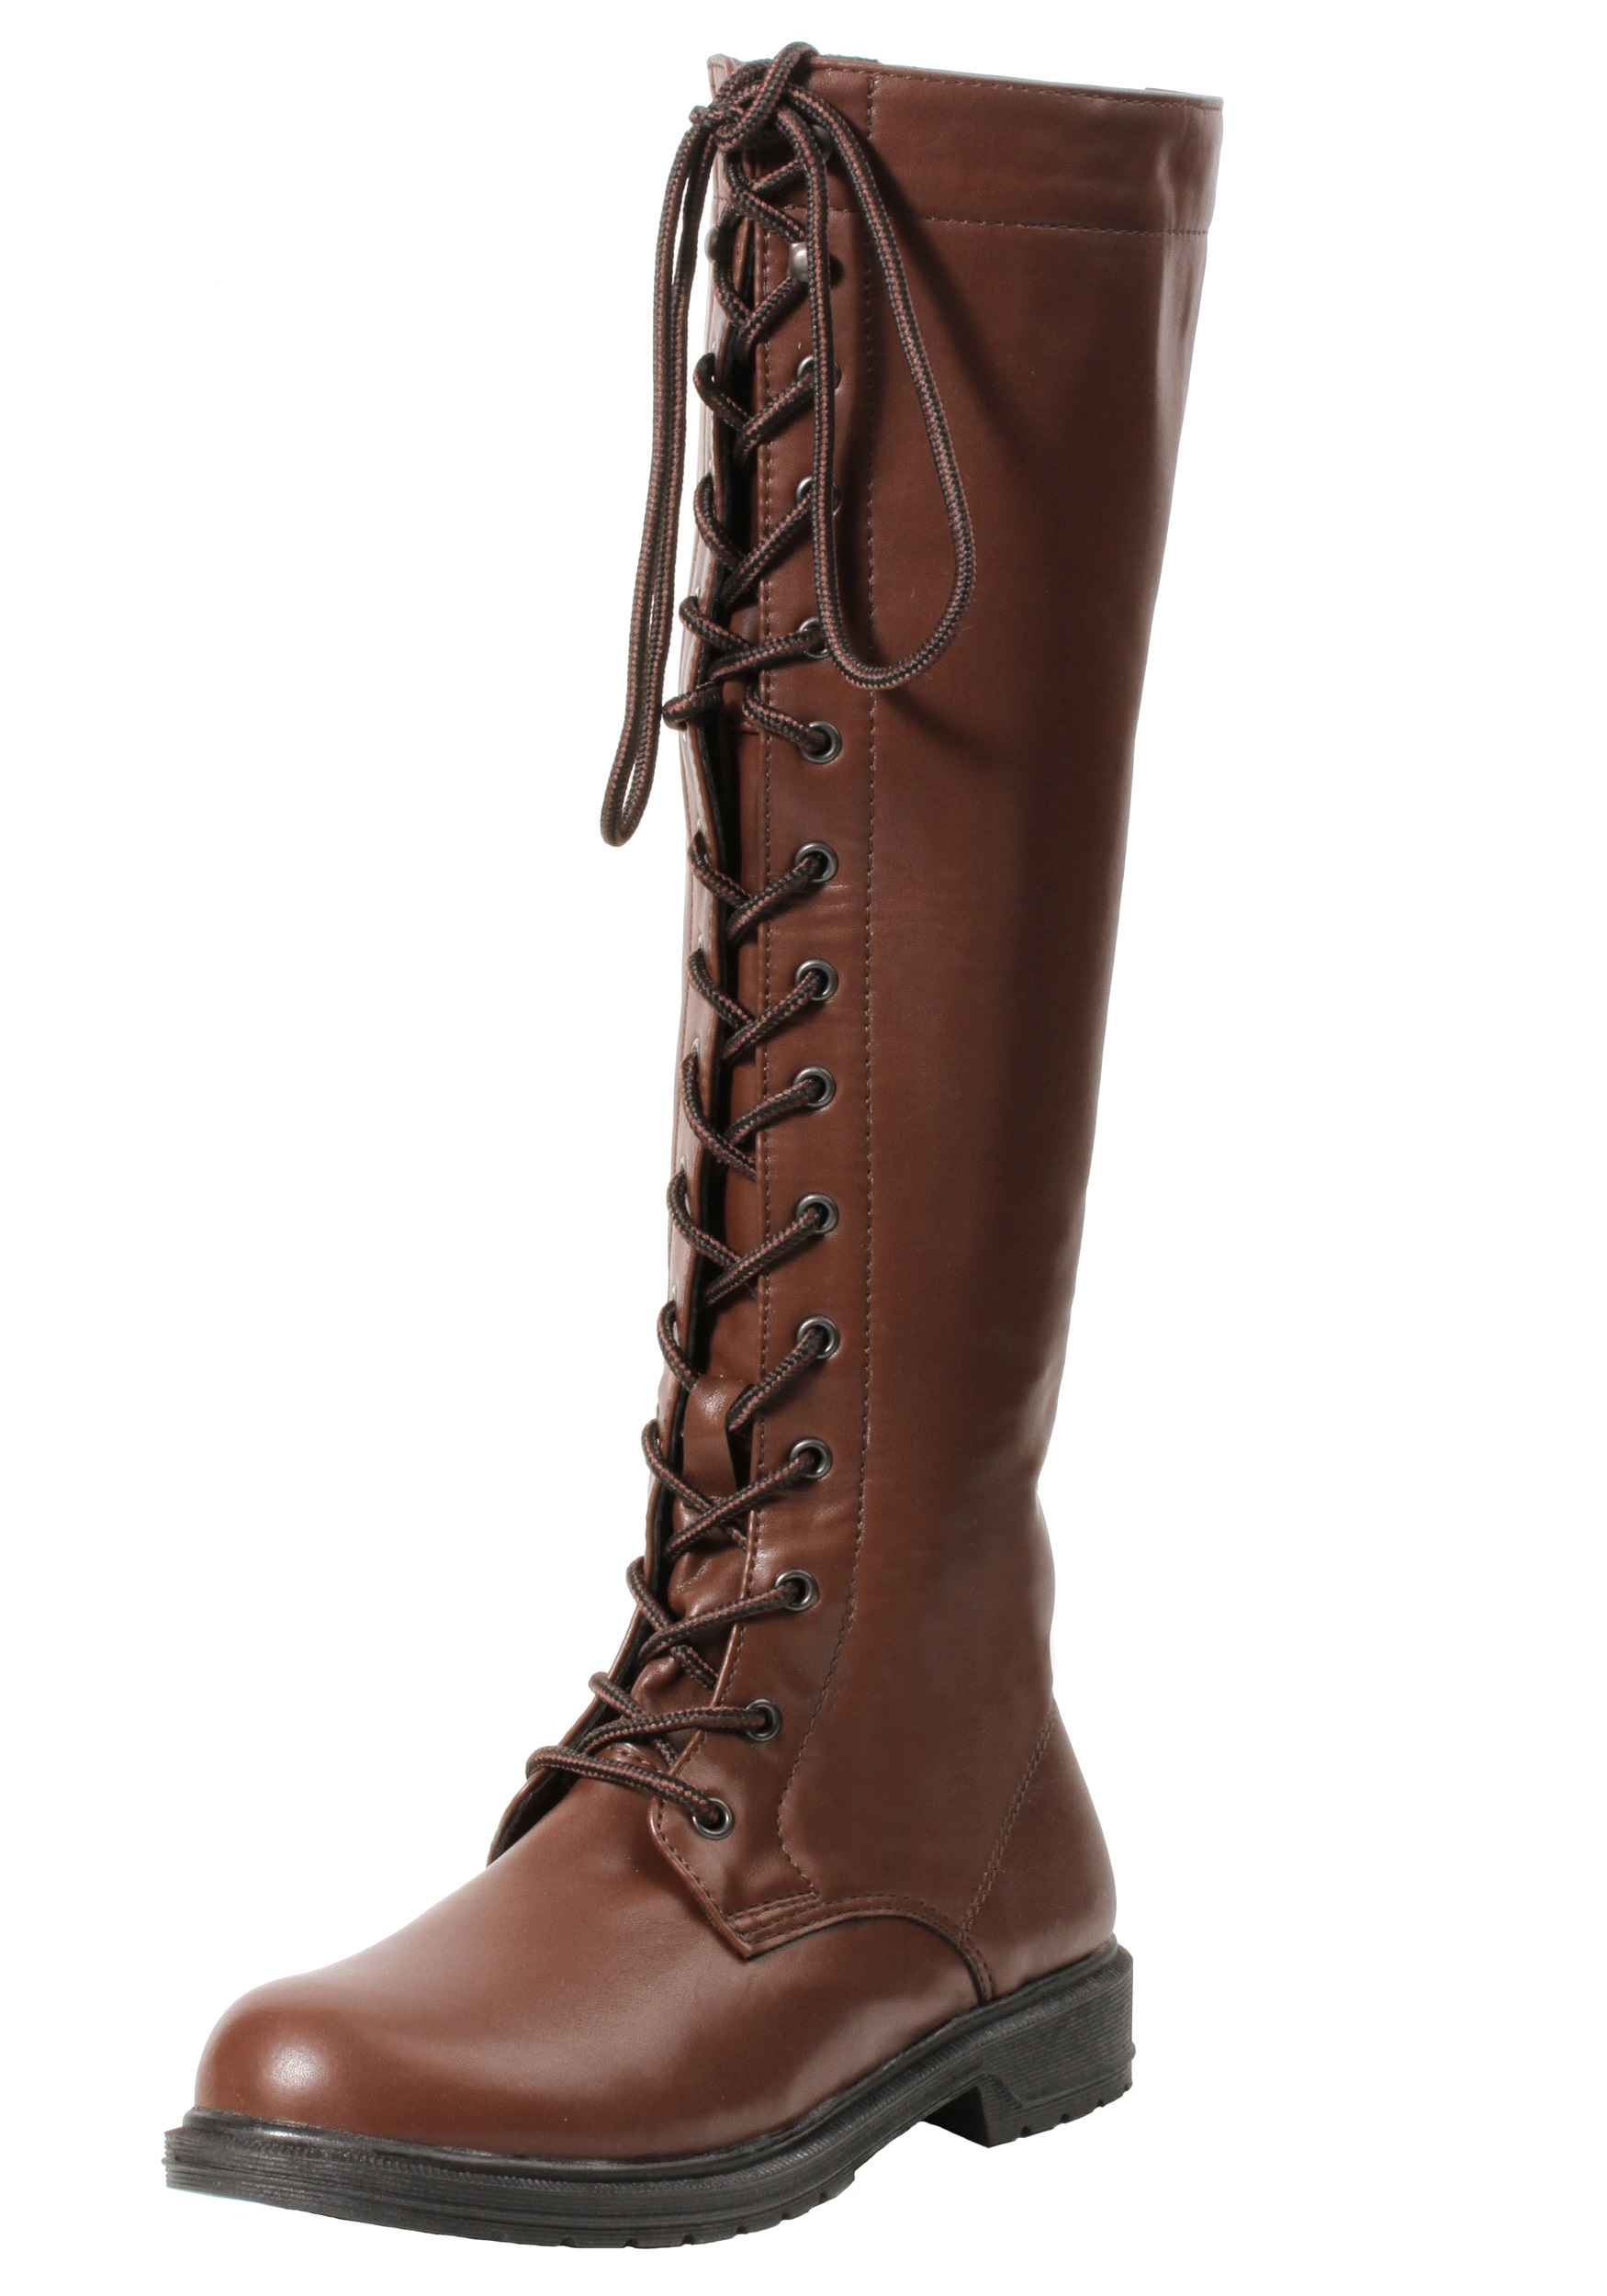 Leather lace up boots - results from brands Propét, Timberland, Skechers, products like Steve Madden Women's Troopa Combat Boots - Brown 11M, Frye Melissa Lace Short (Dark Grey Smooth Vintage Leather) Cowboy Boots, Genuine Grip Women's Size Wide Width Black Injection Waterproof Steel Toe Non Slip Full Grain Leather Boot, Shoes.